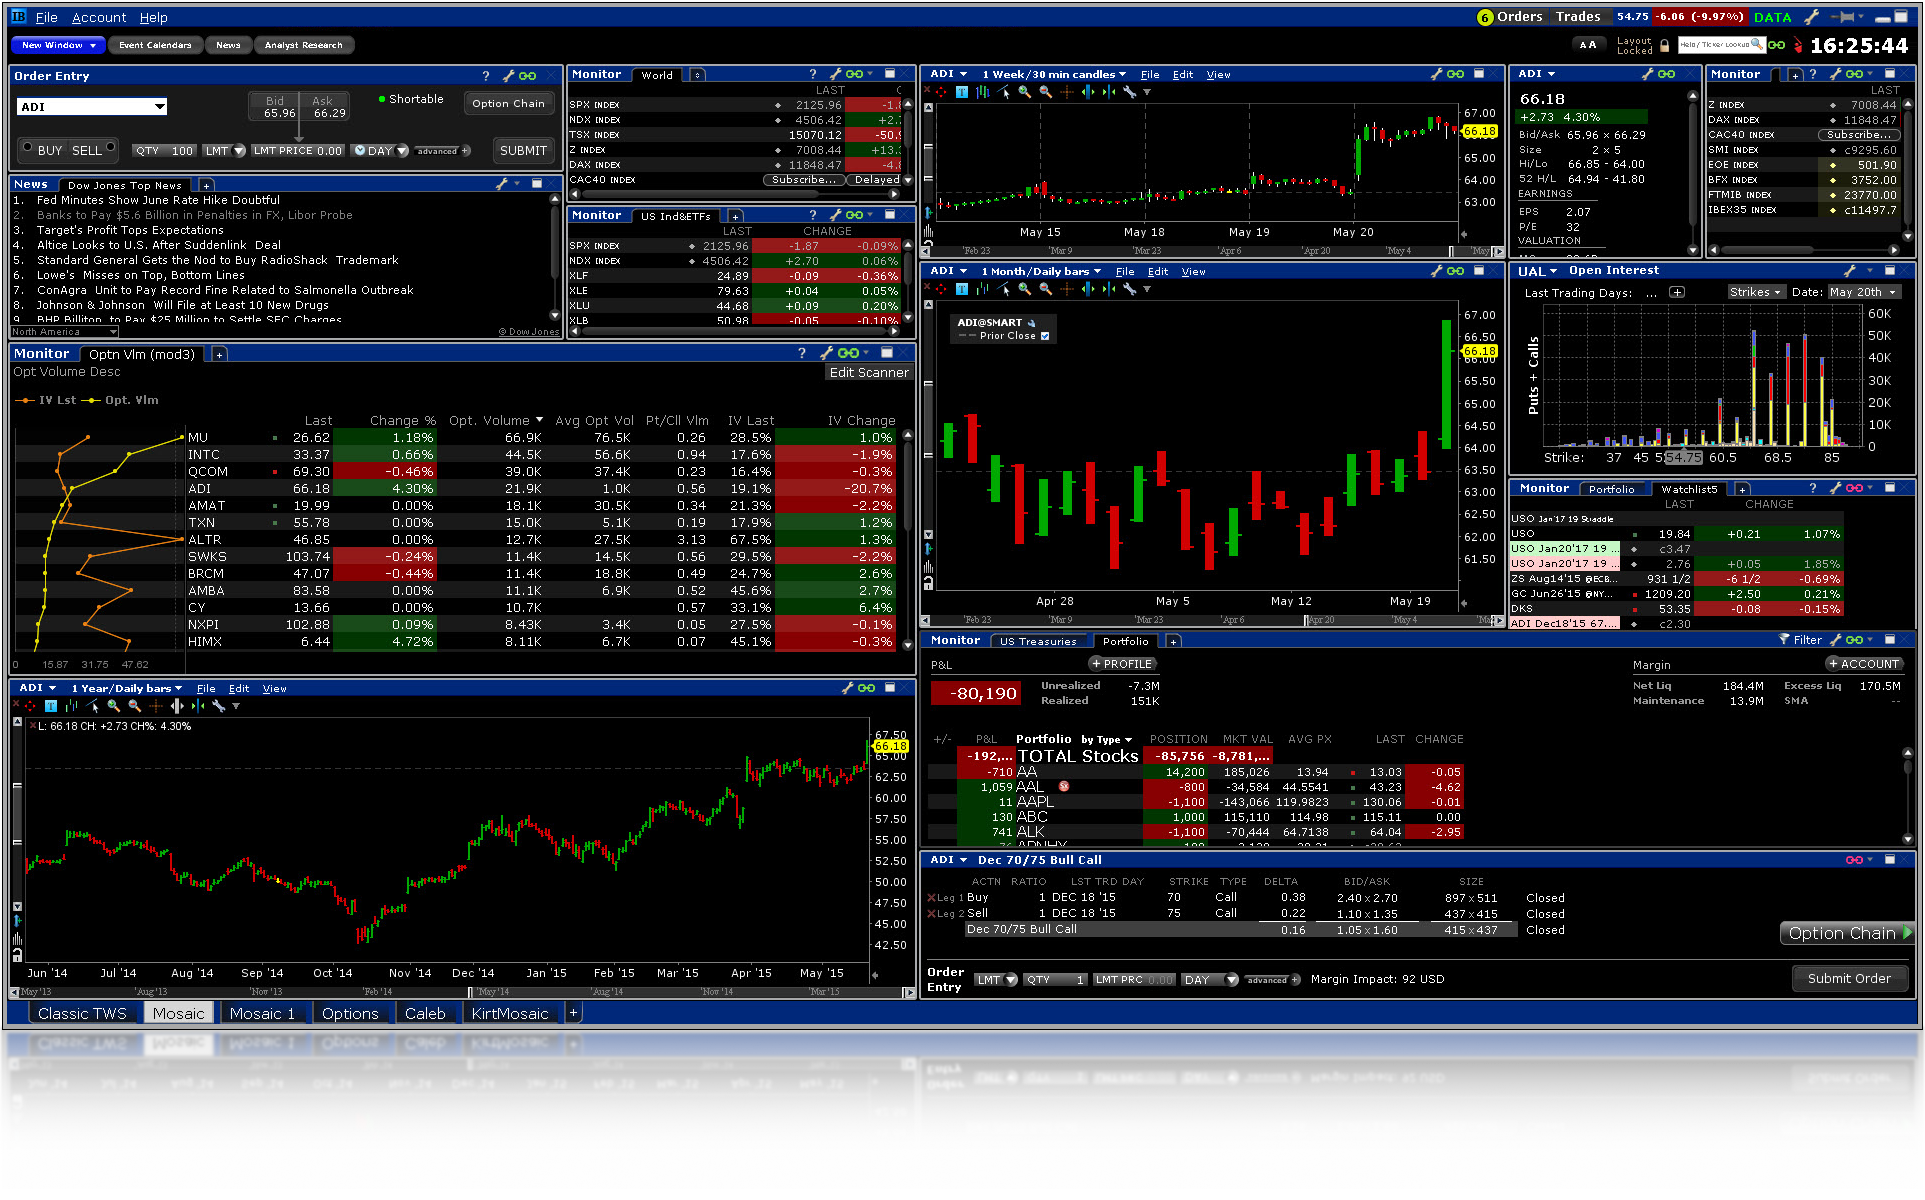 Best charting software for options trading